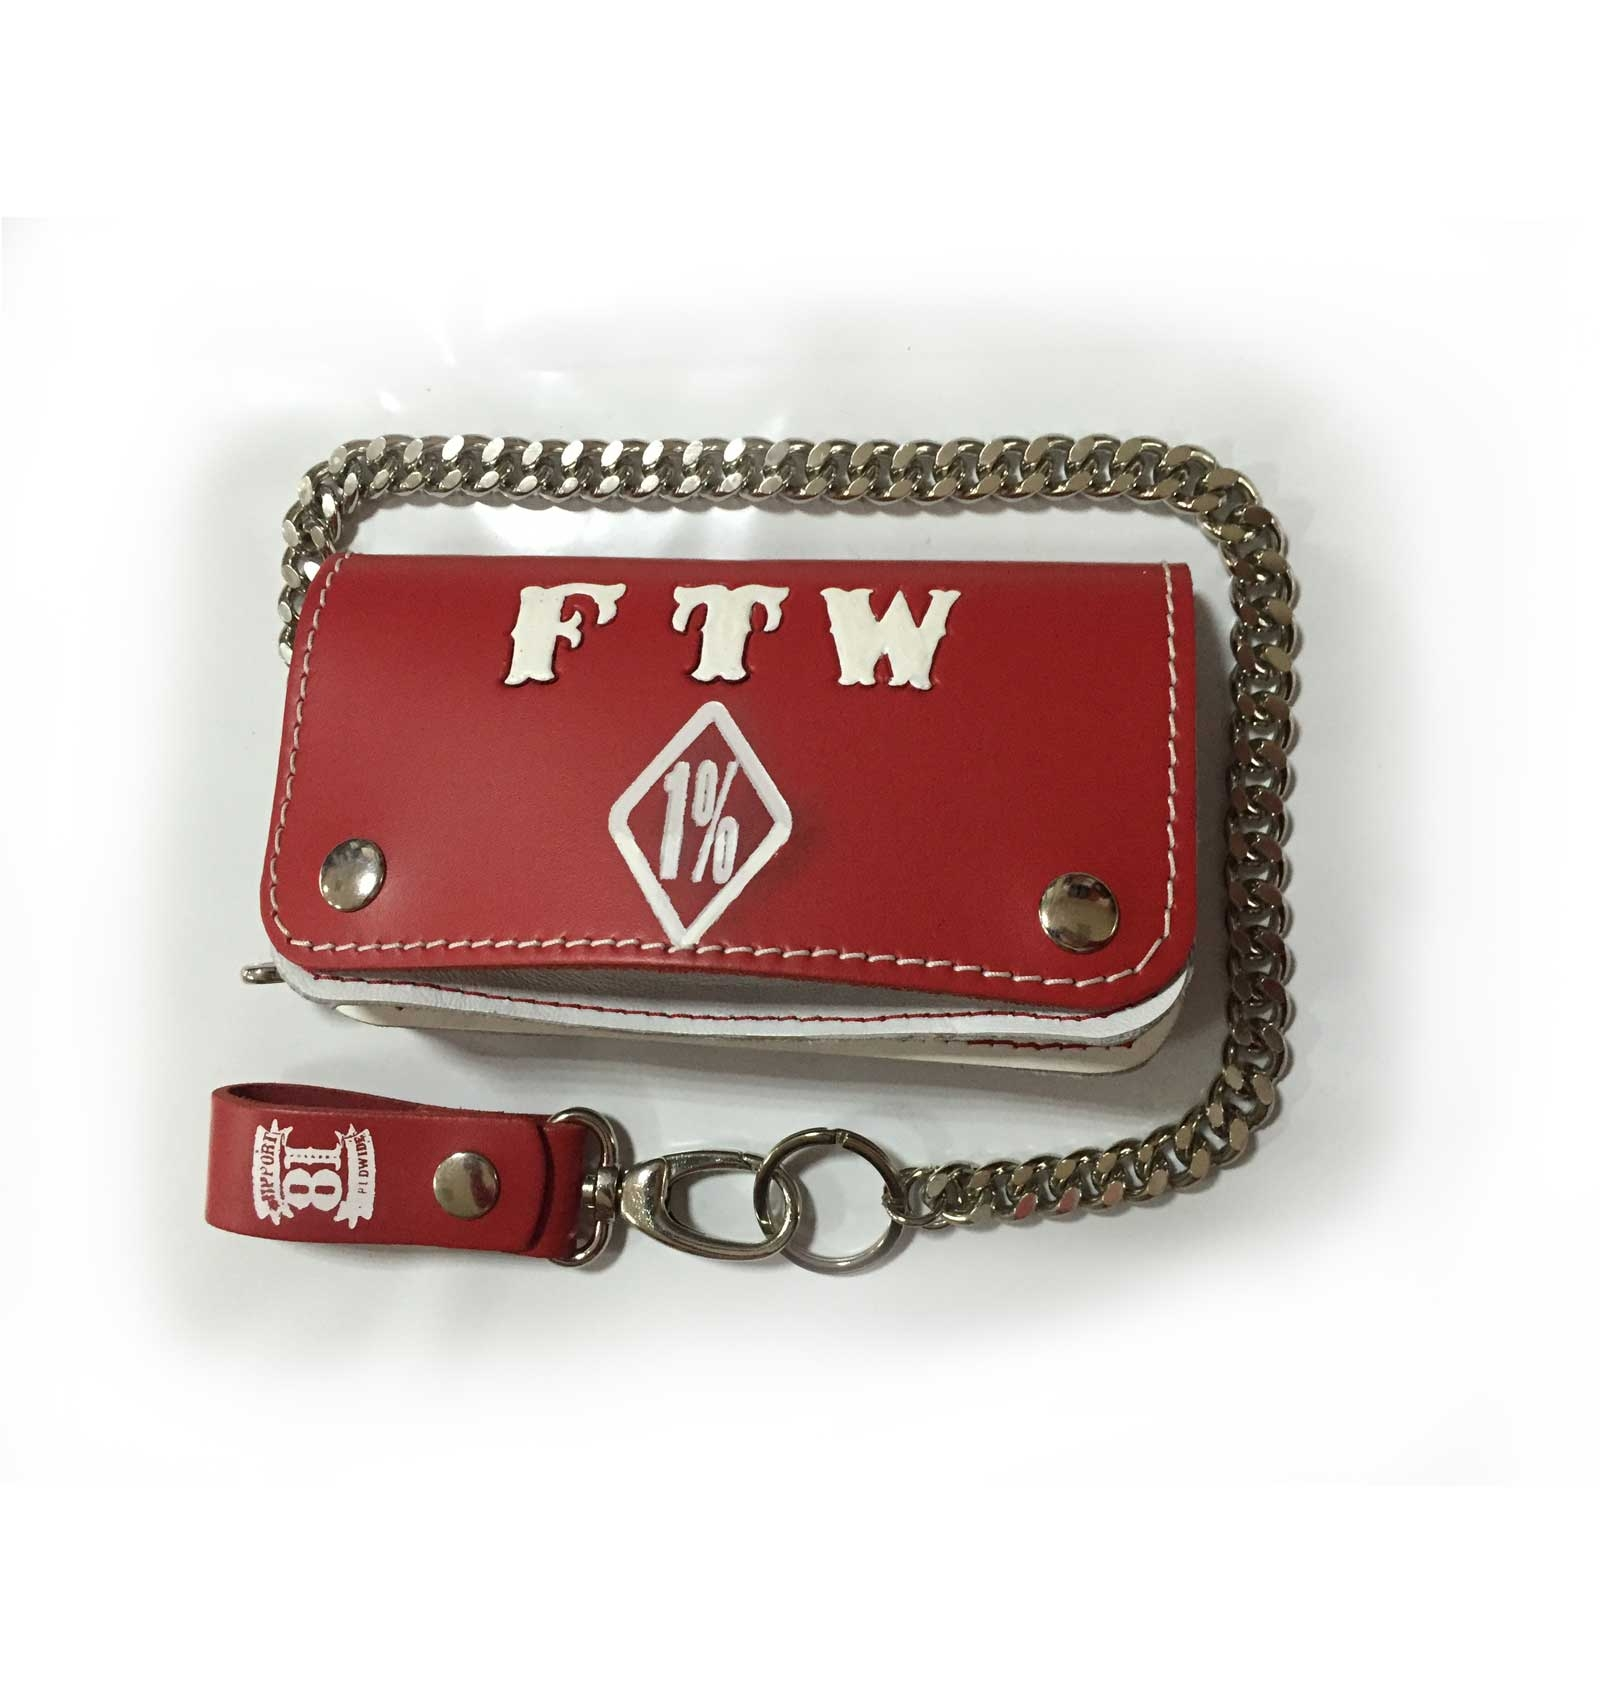 Hells Angels Support81 red white FTW Wallet 18cm with Chain - Hells